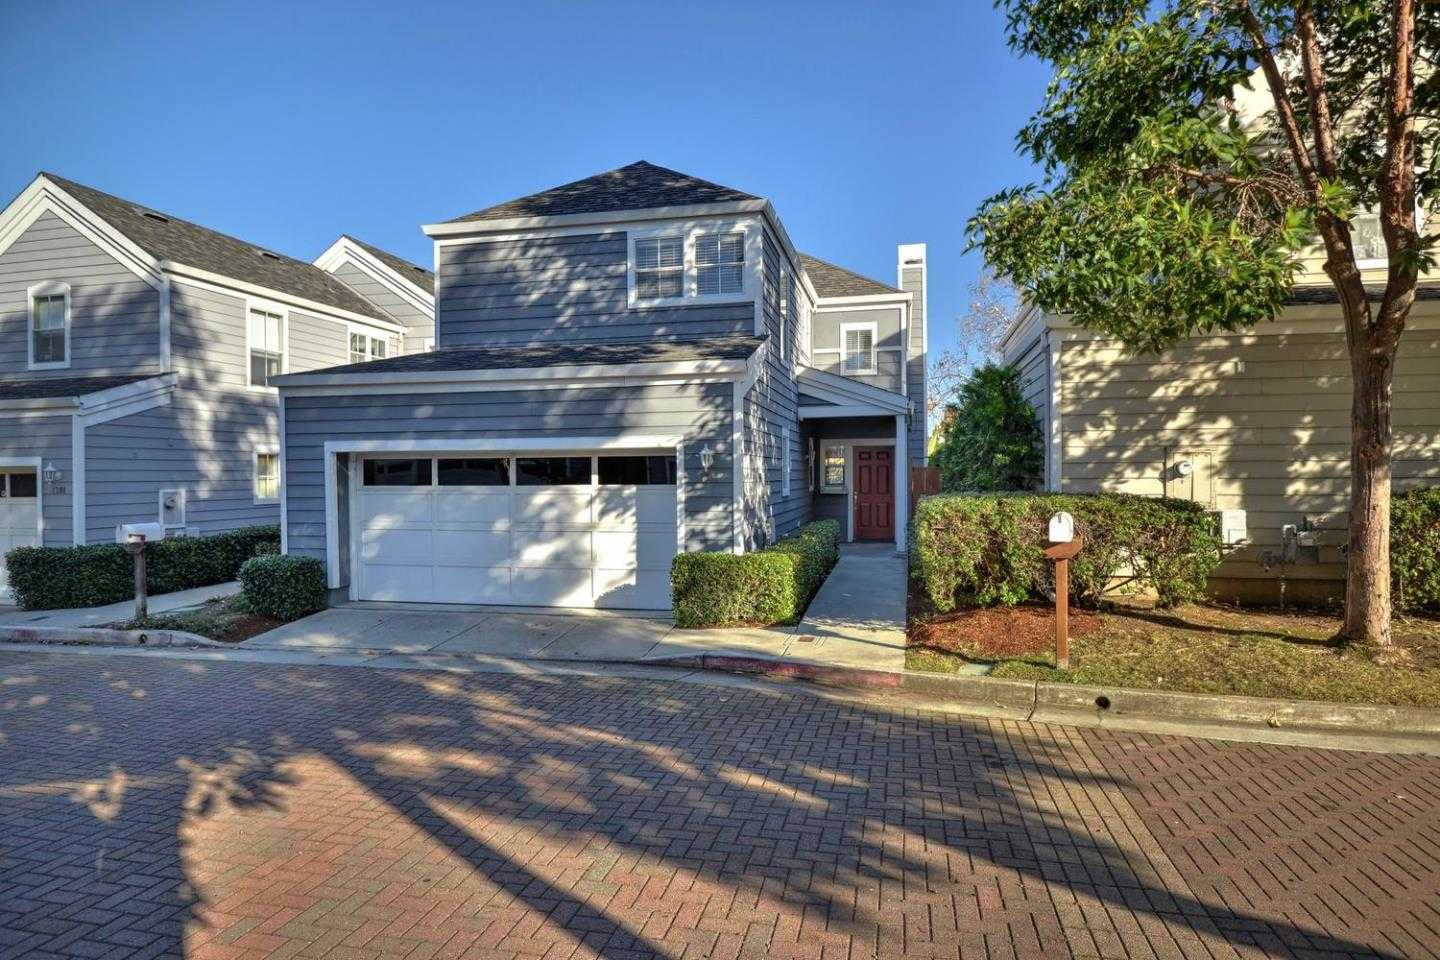 $1,595,000 - 3Br/3Ba -  for Sale in Sunnyvale